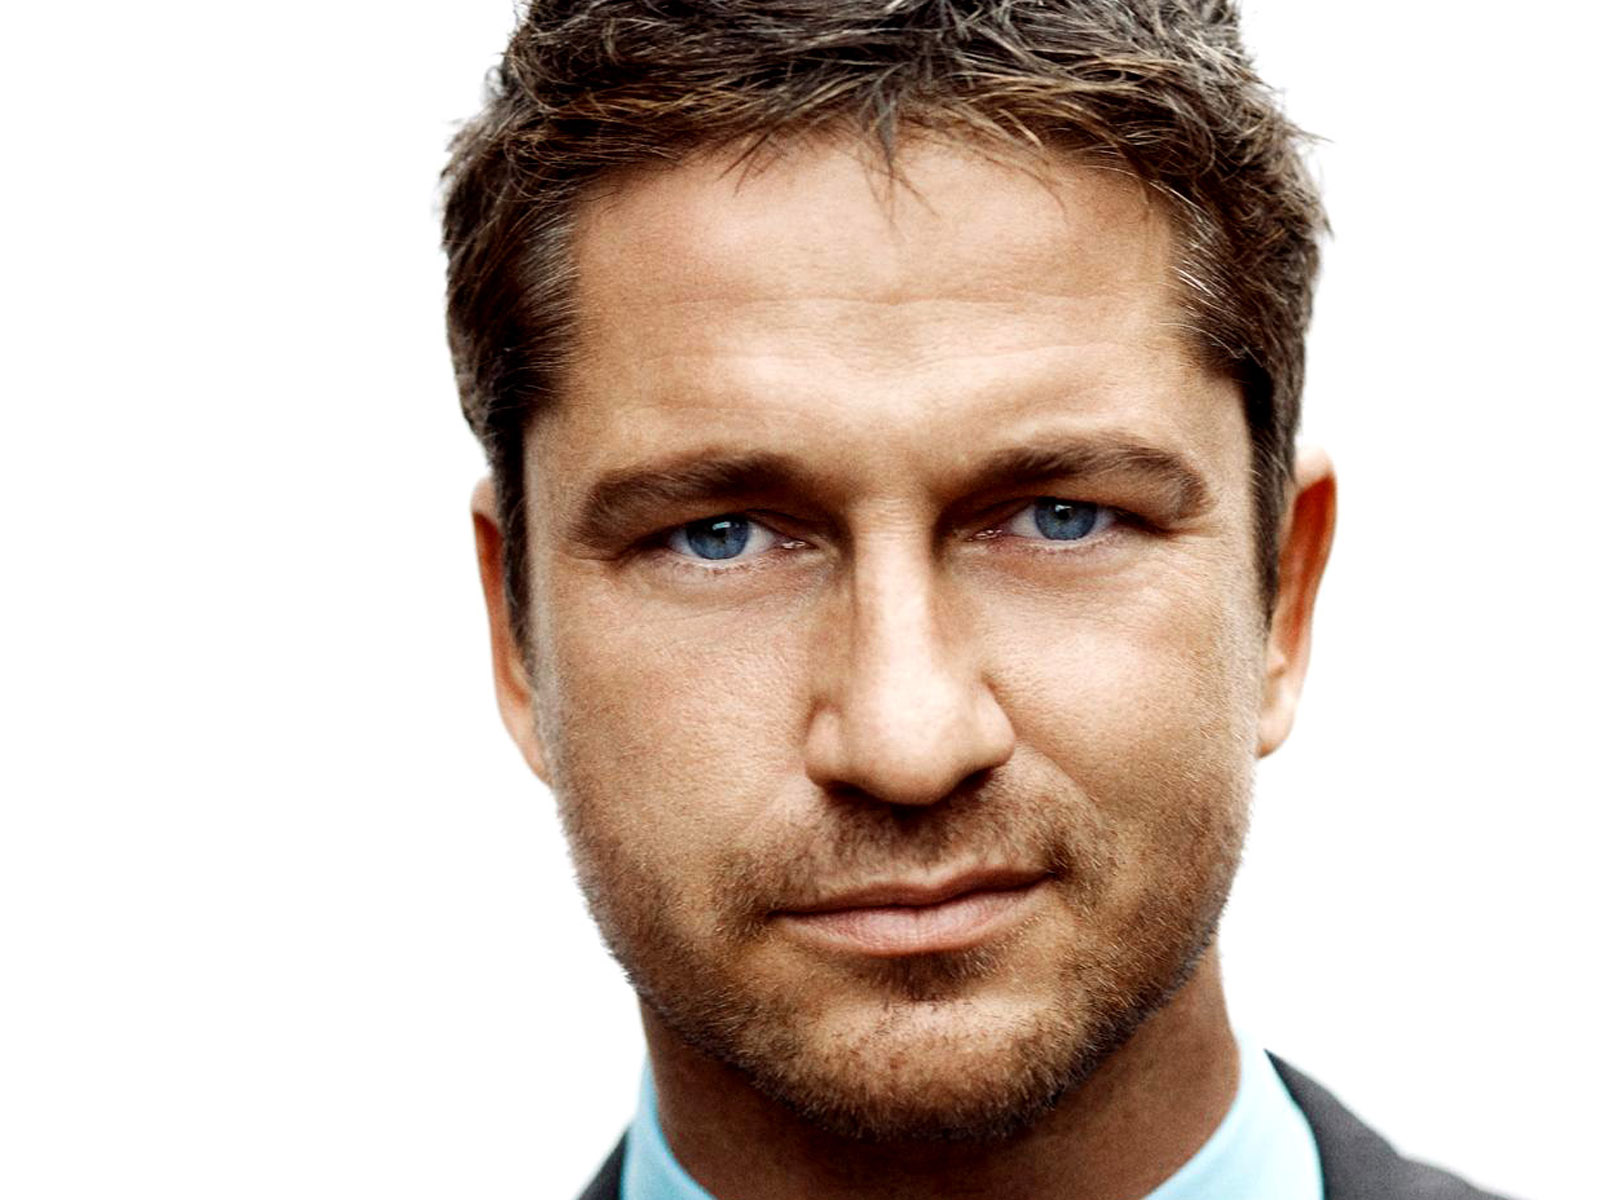 Gerard-Butler-Wallpaper-closeup